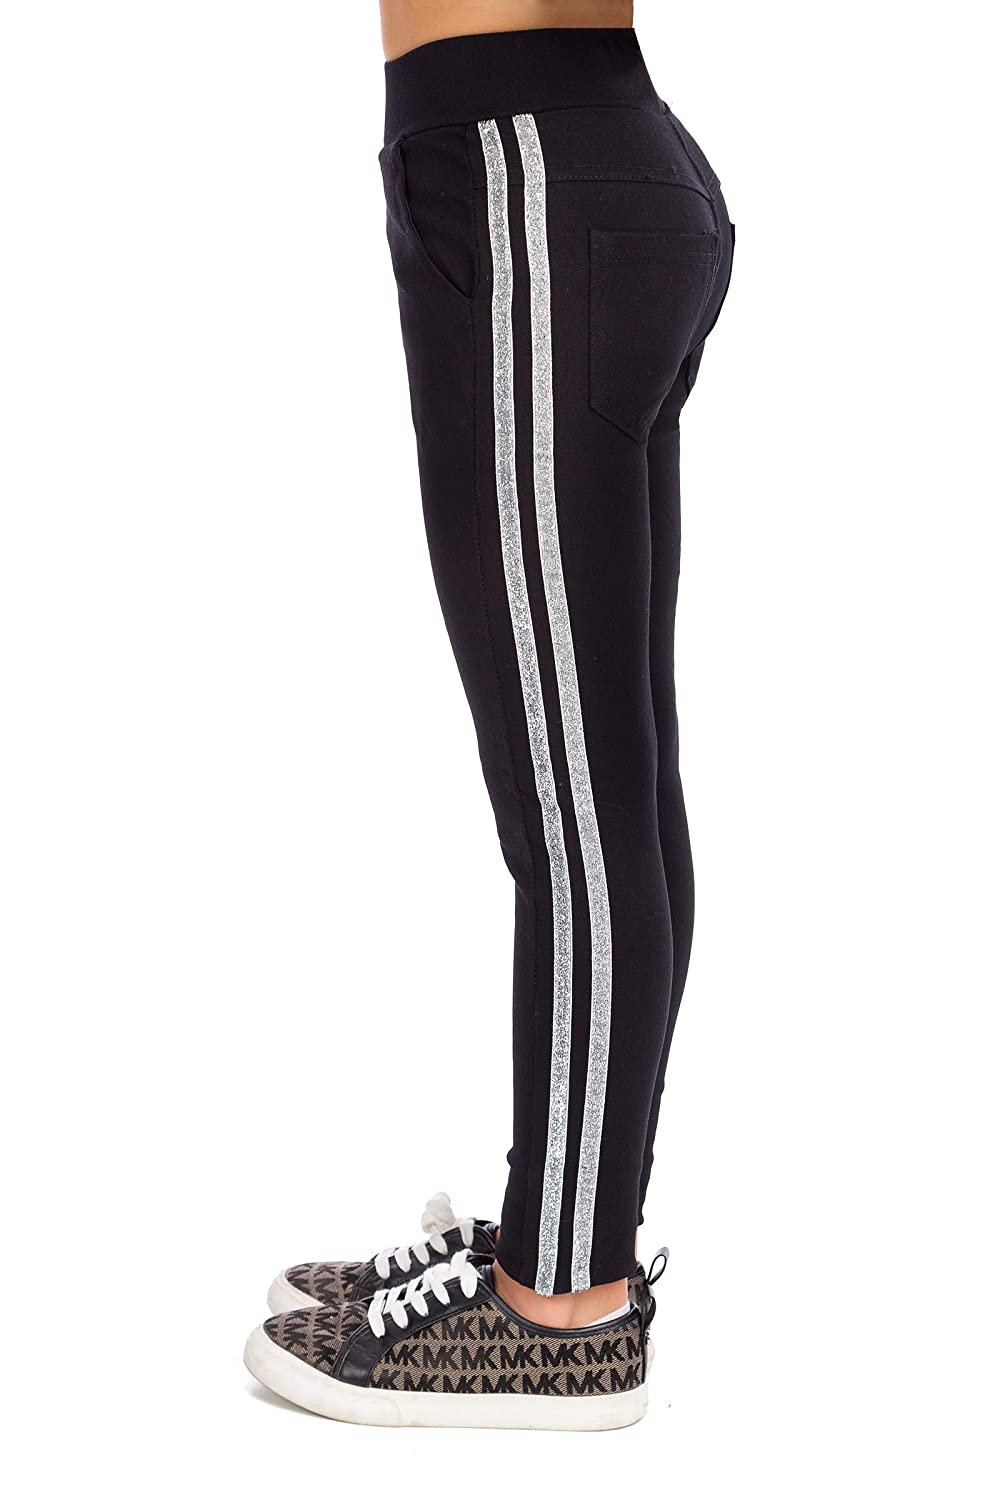 hi!mom Girls High Waisted Warm Sports Leggings Stretch Kids Solid Pants Stripes Trousers with Pockets FS99K08